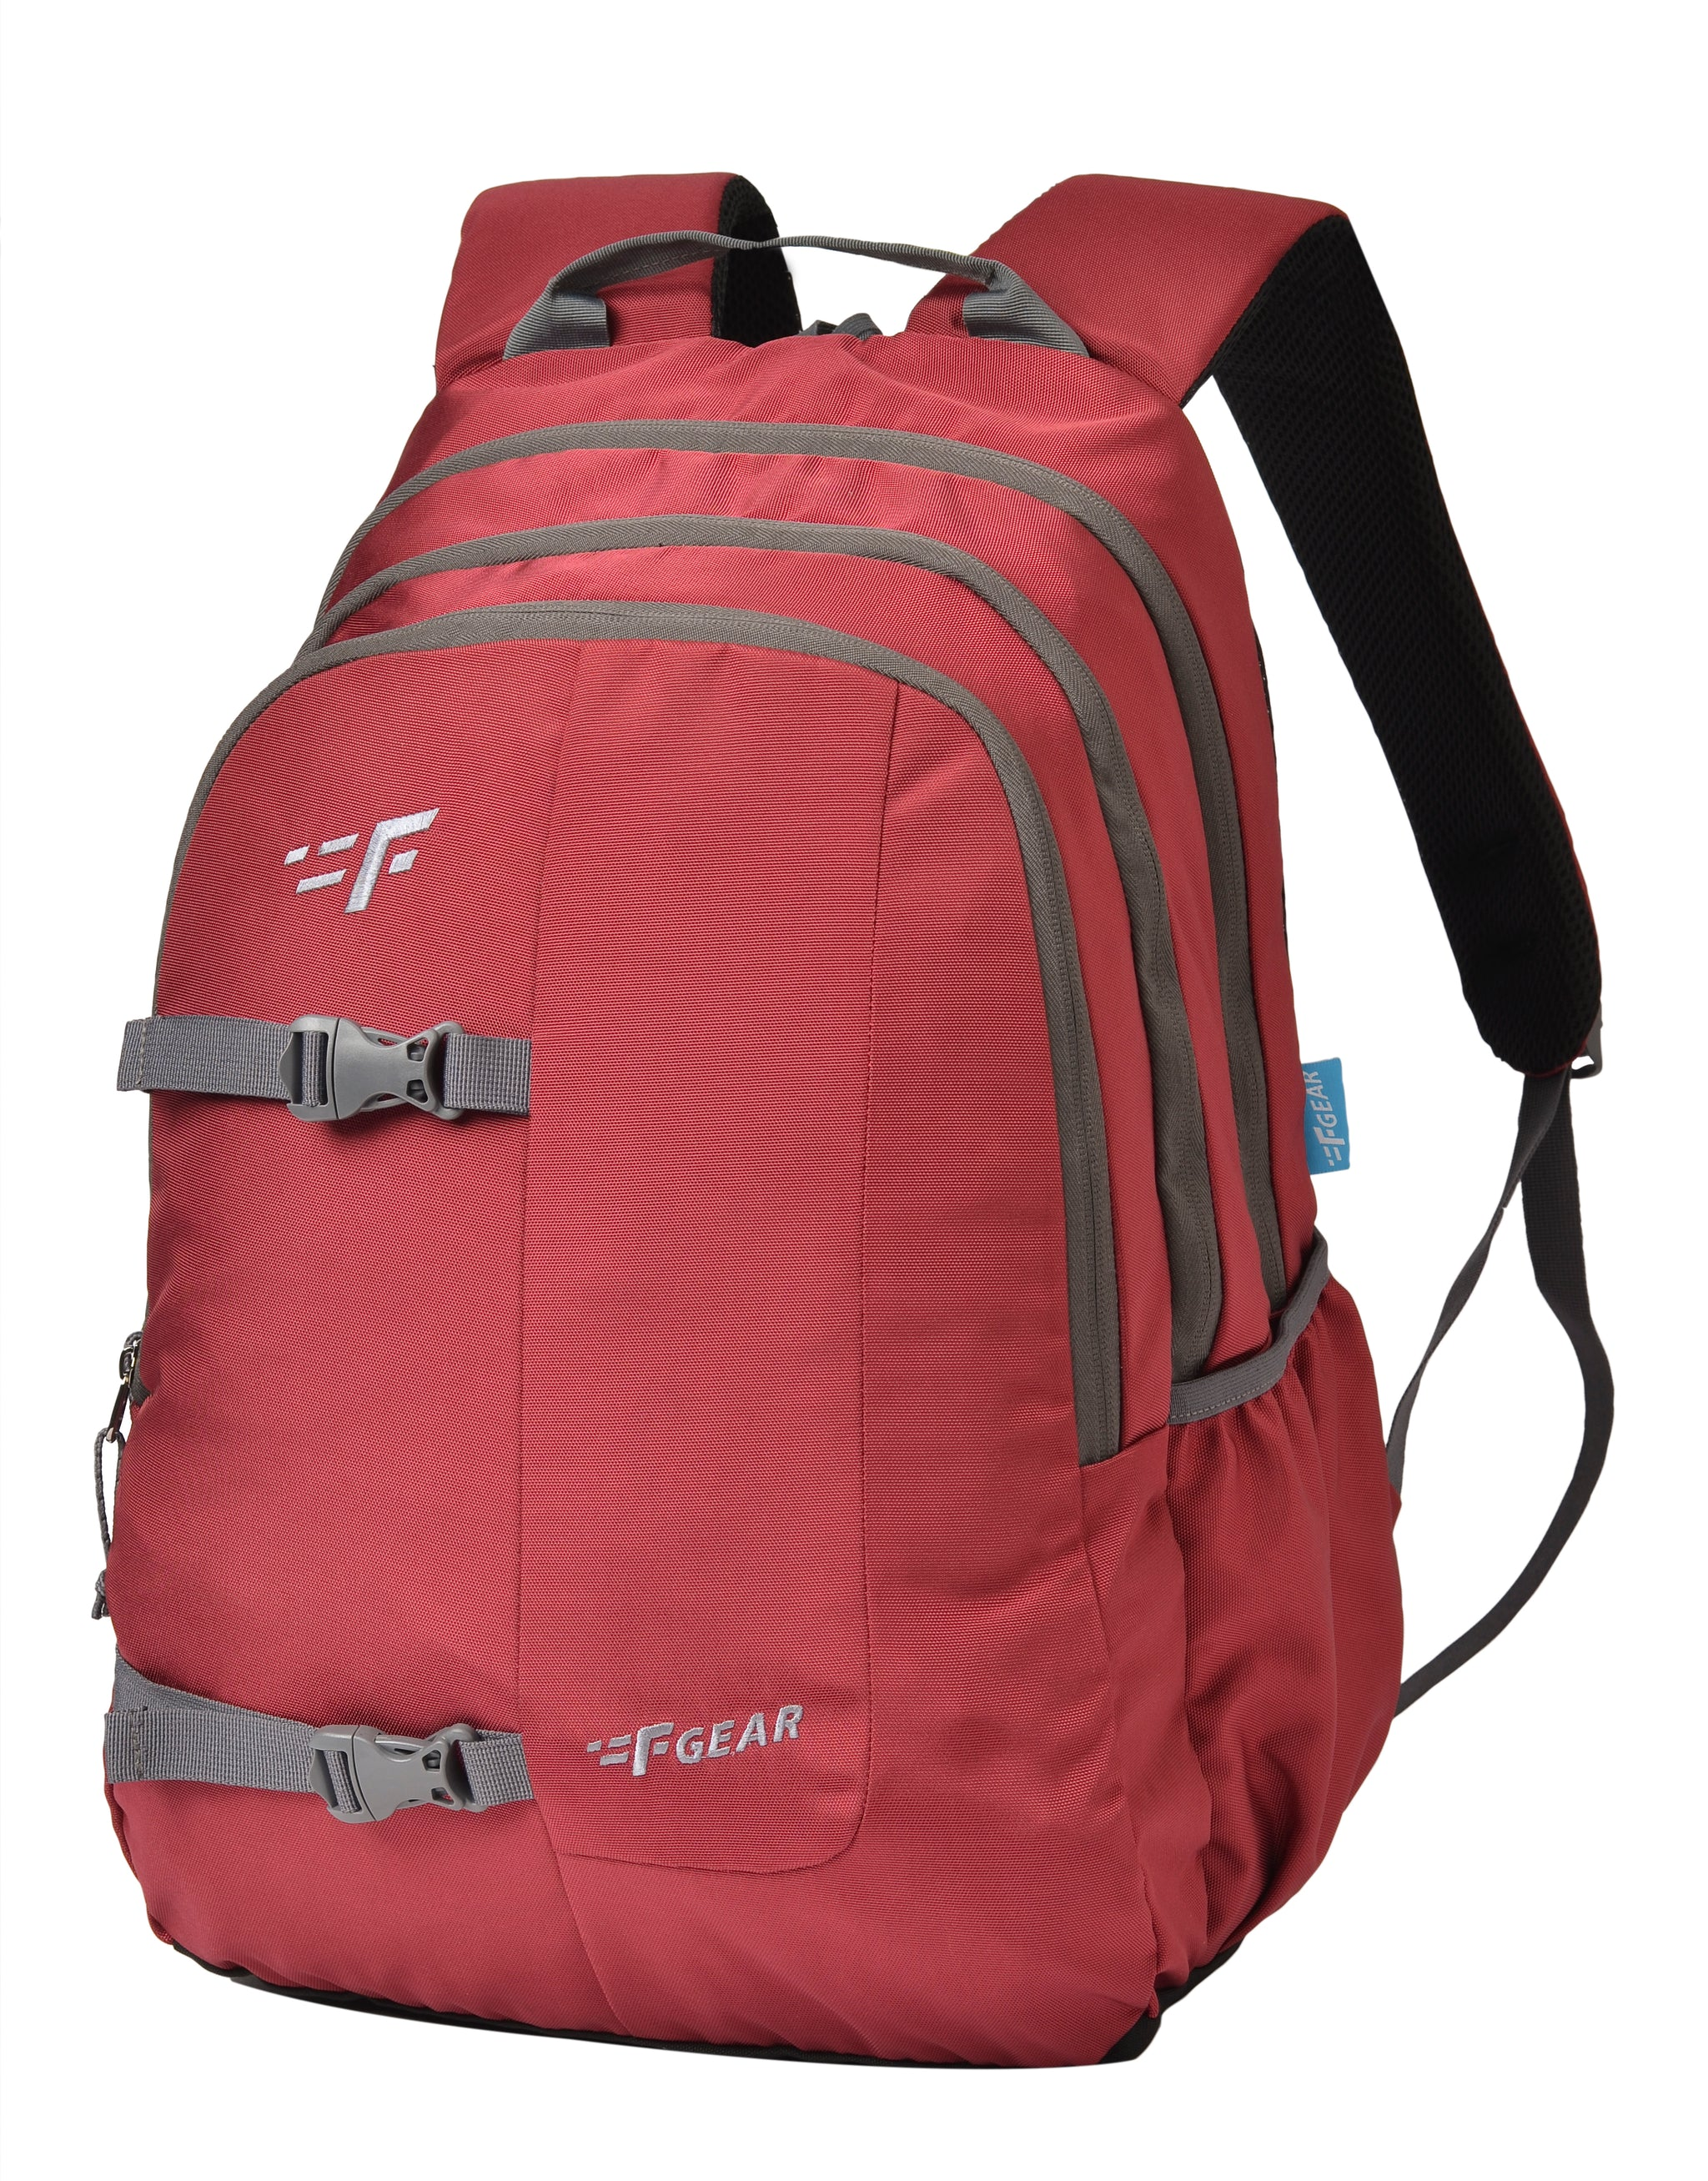 F Gear Berkely 28 Liters Backpack (Maroon Guc)